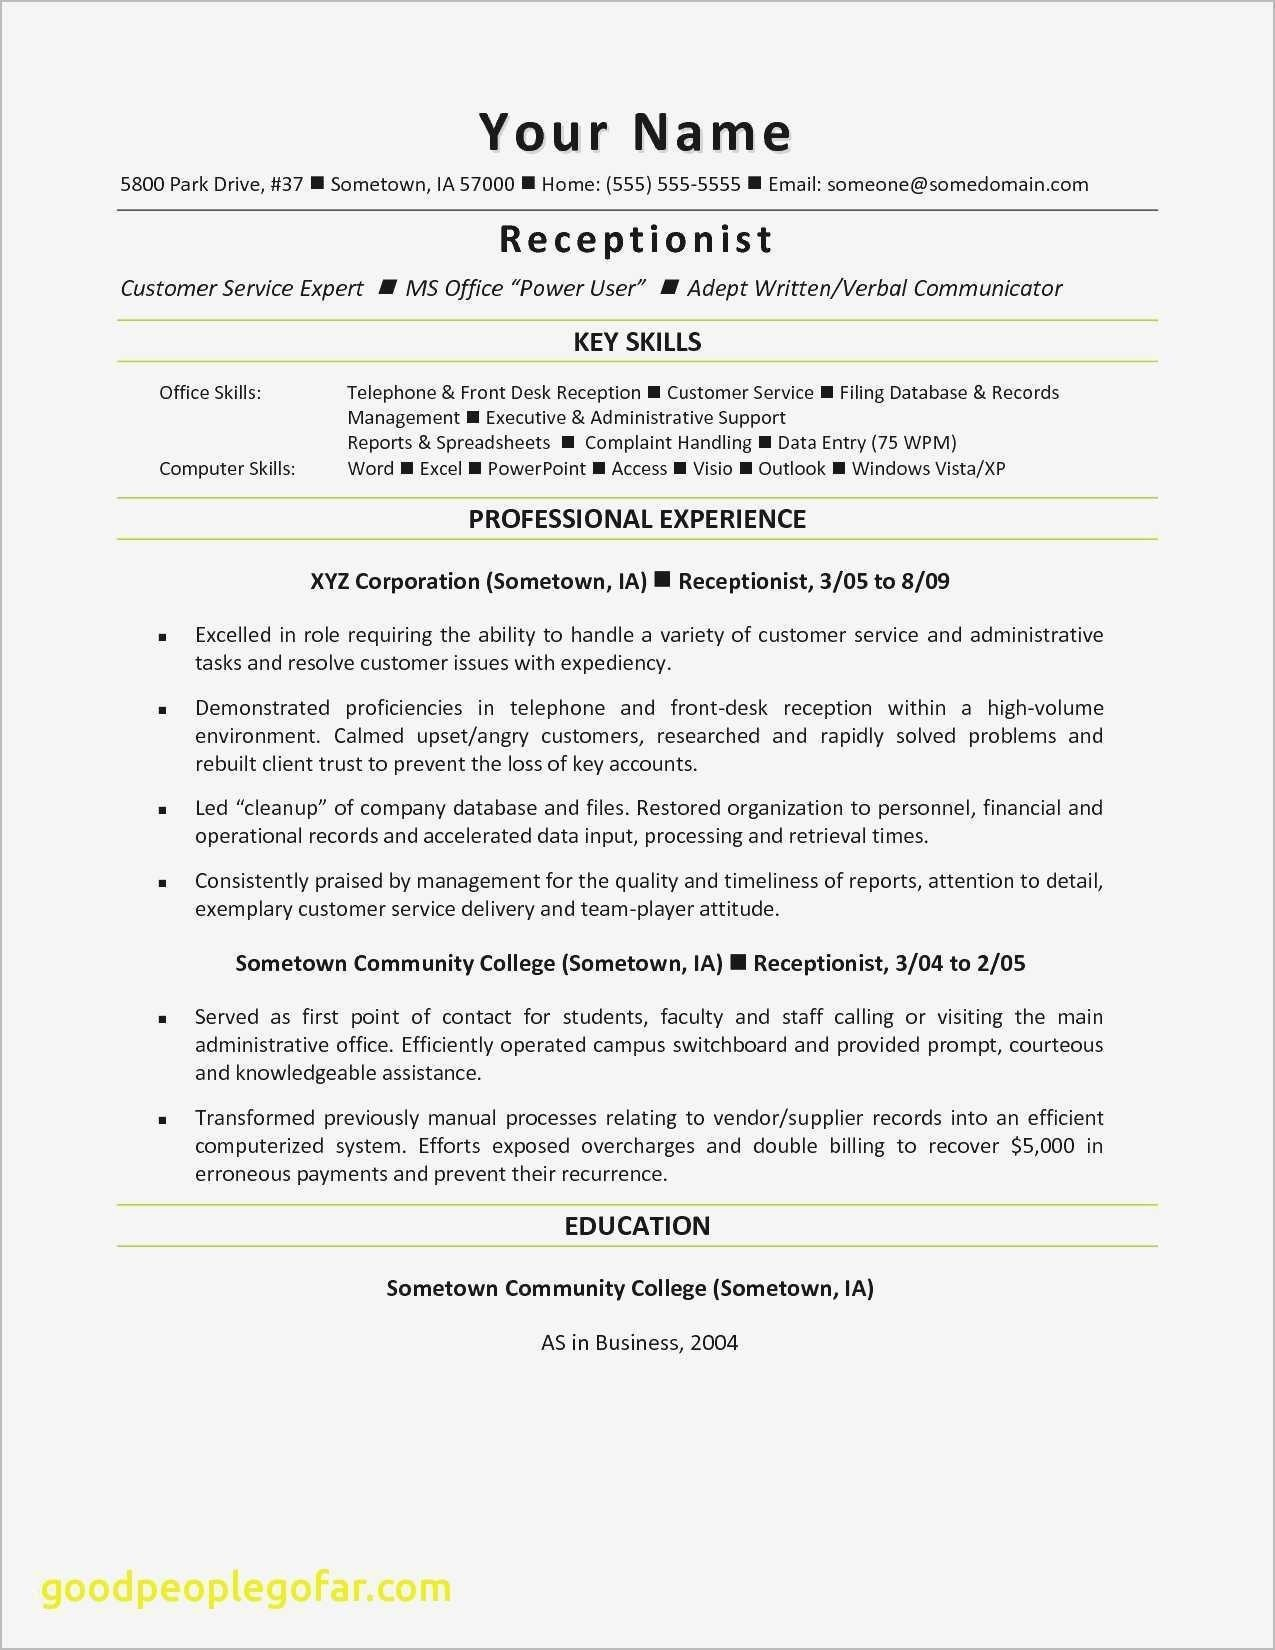 Medical Receptionist Resume Template - Receptionist Resume Objective Examples Save Medical Receptionist